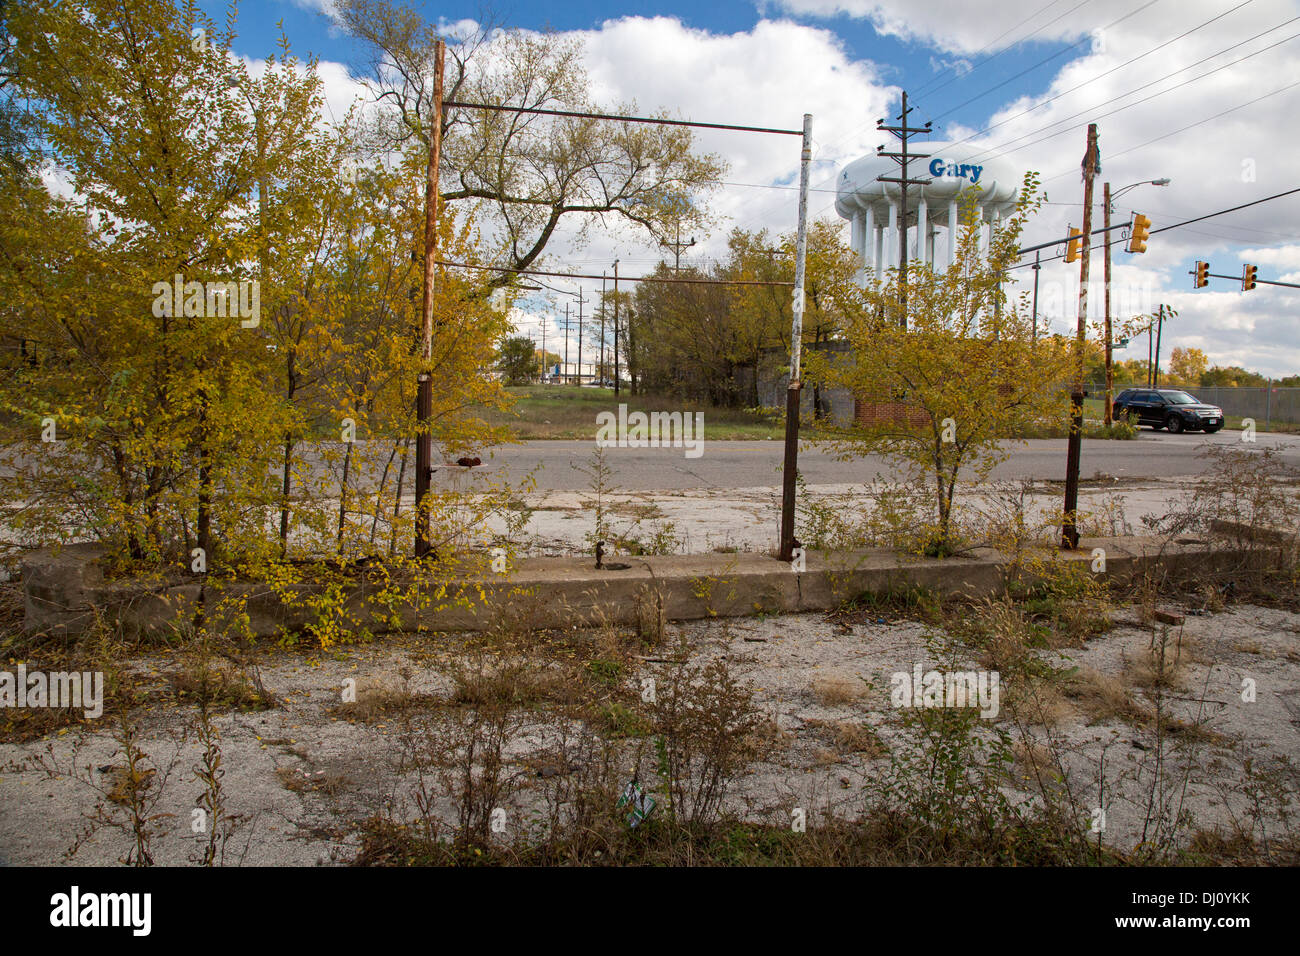 Gary, Indiana - Vacant and overgrown lots in Gary, Indiana, where the population has declined by more than 50% since 1960. - Stock Image